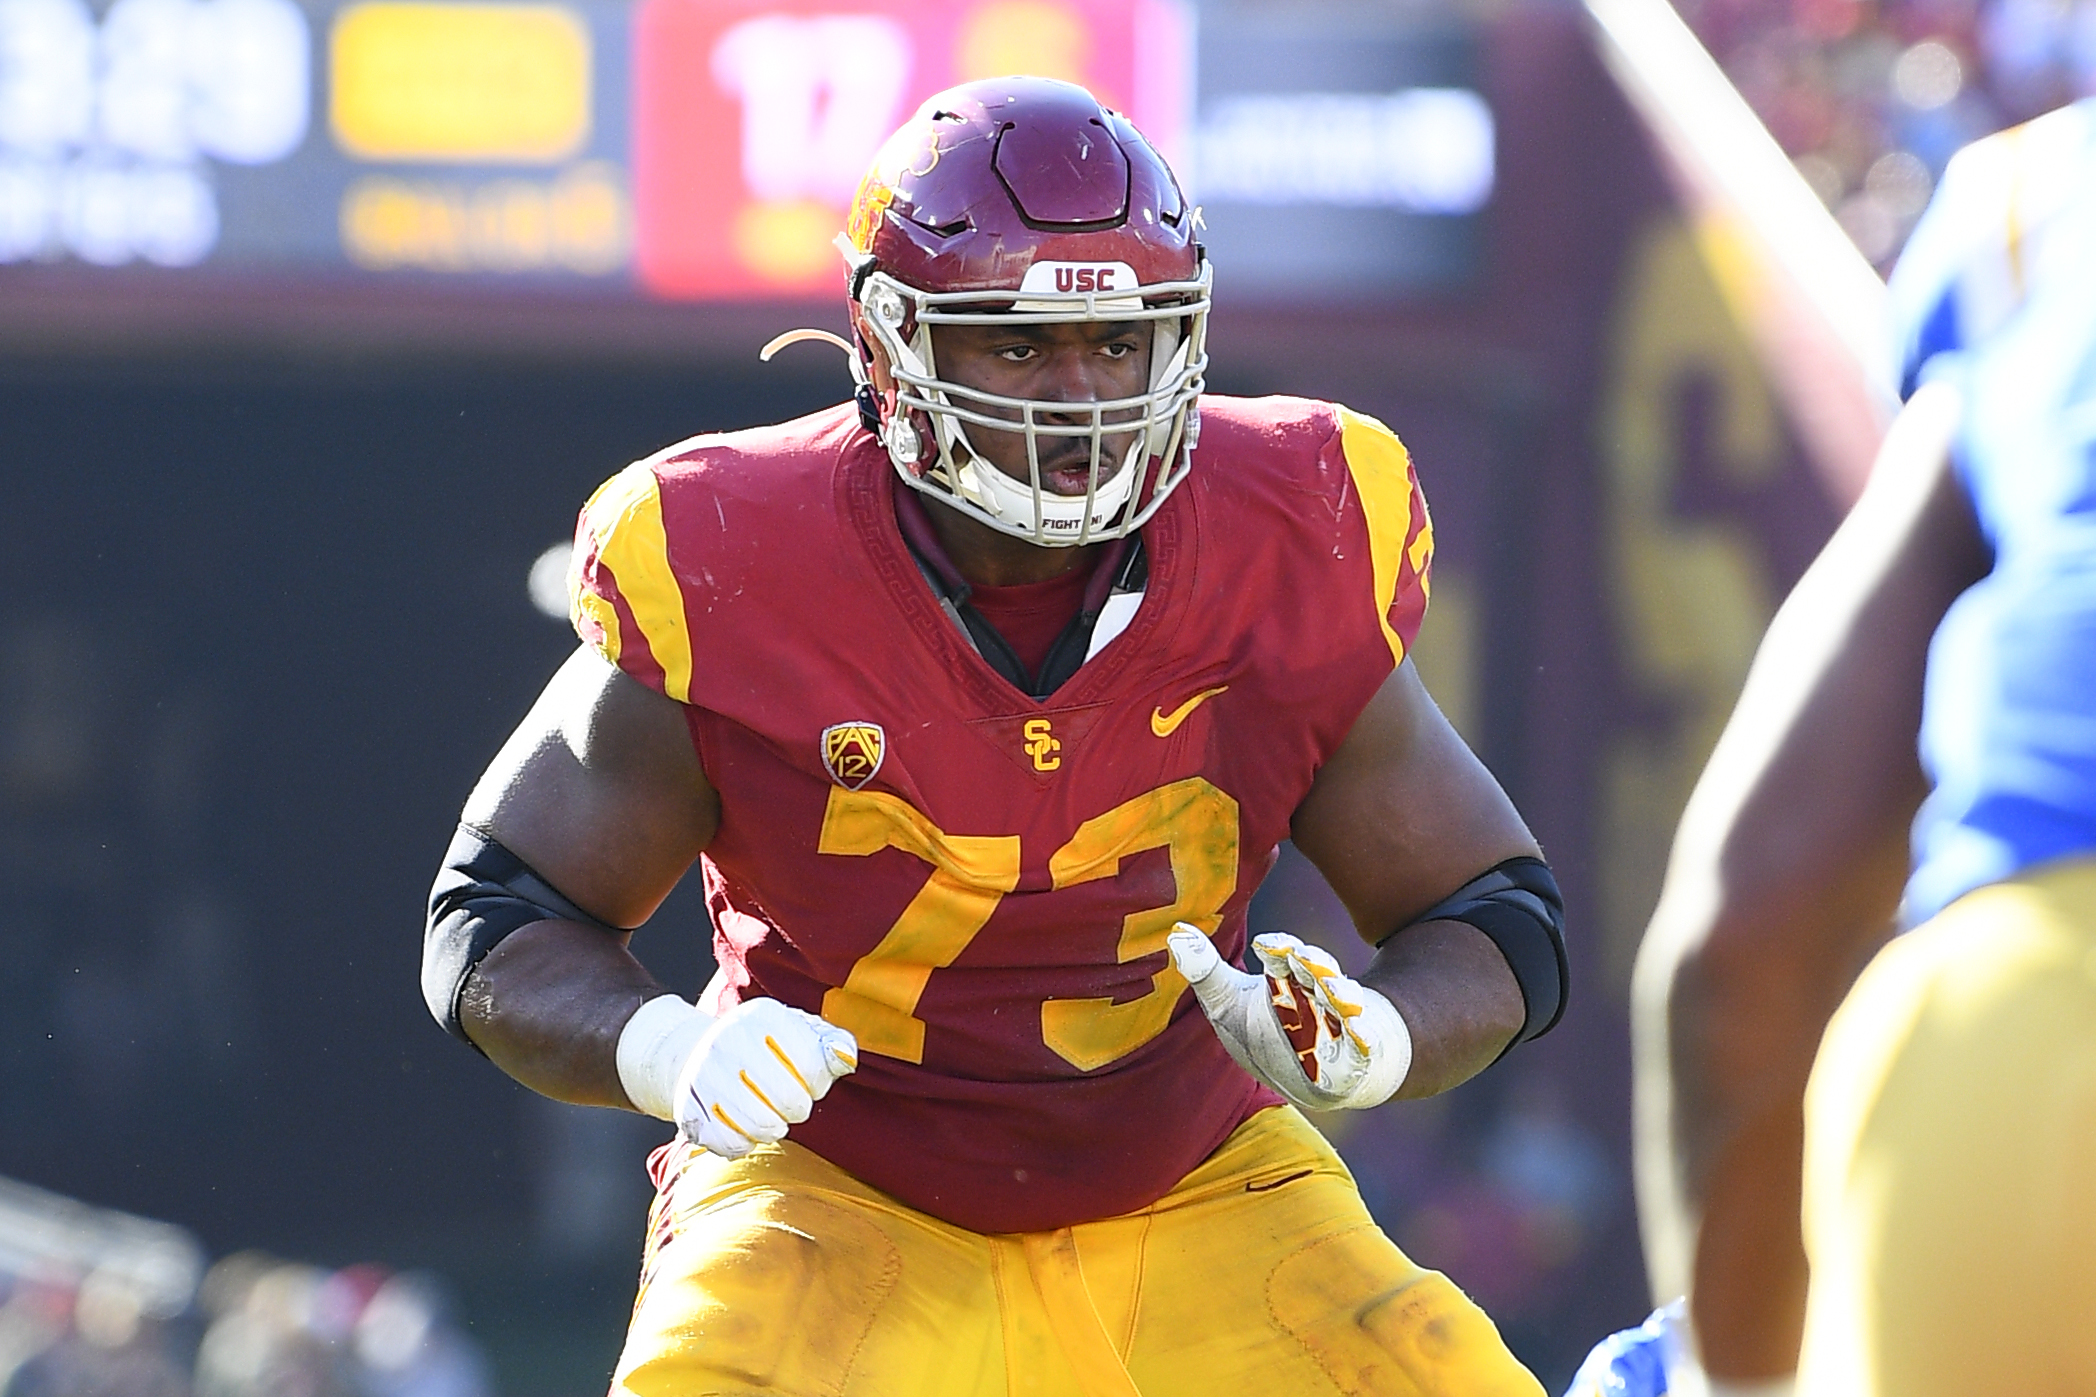 COLLEGE FOOTBALL: NOV 23 UCLA at USC